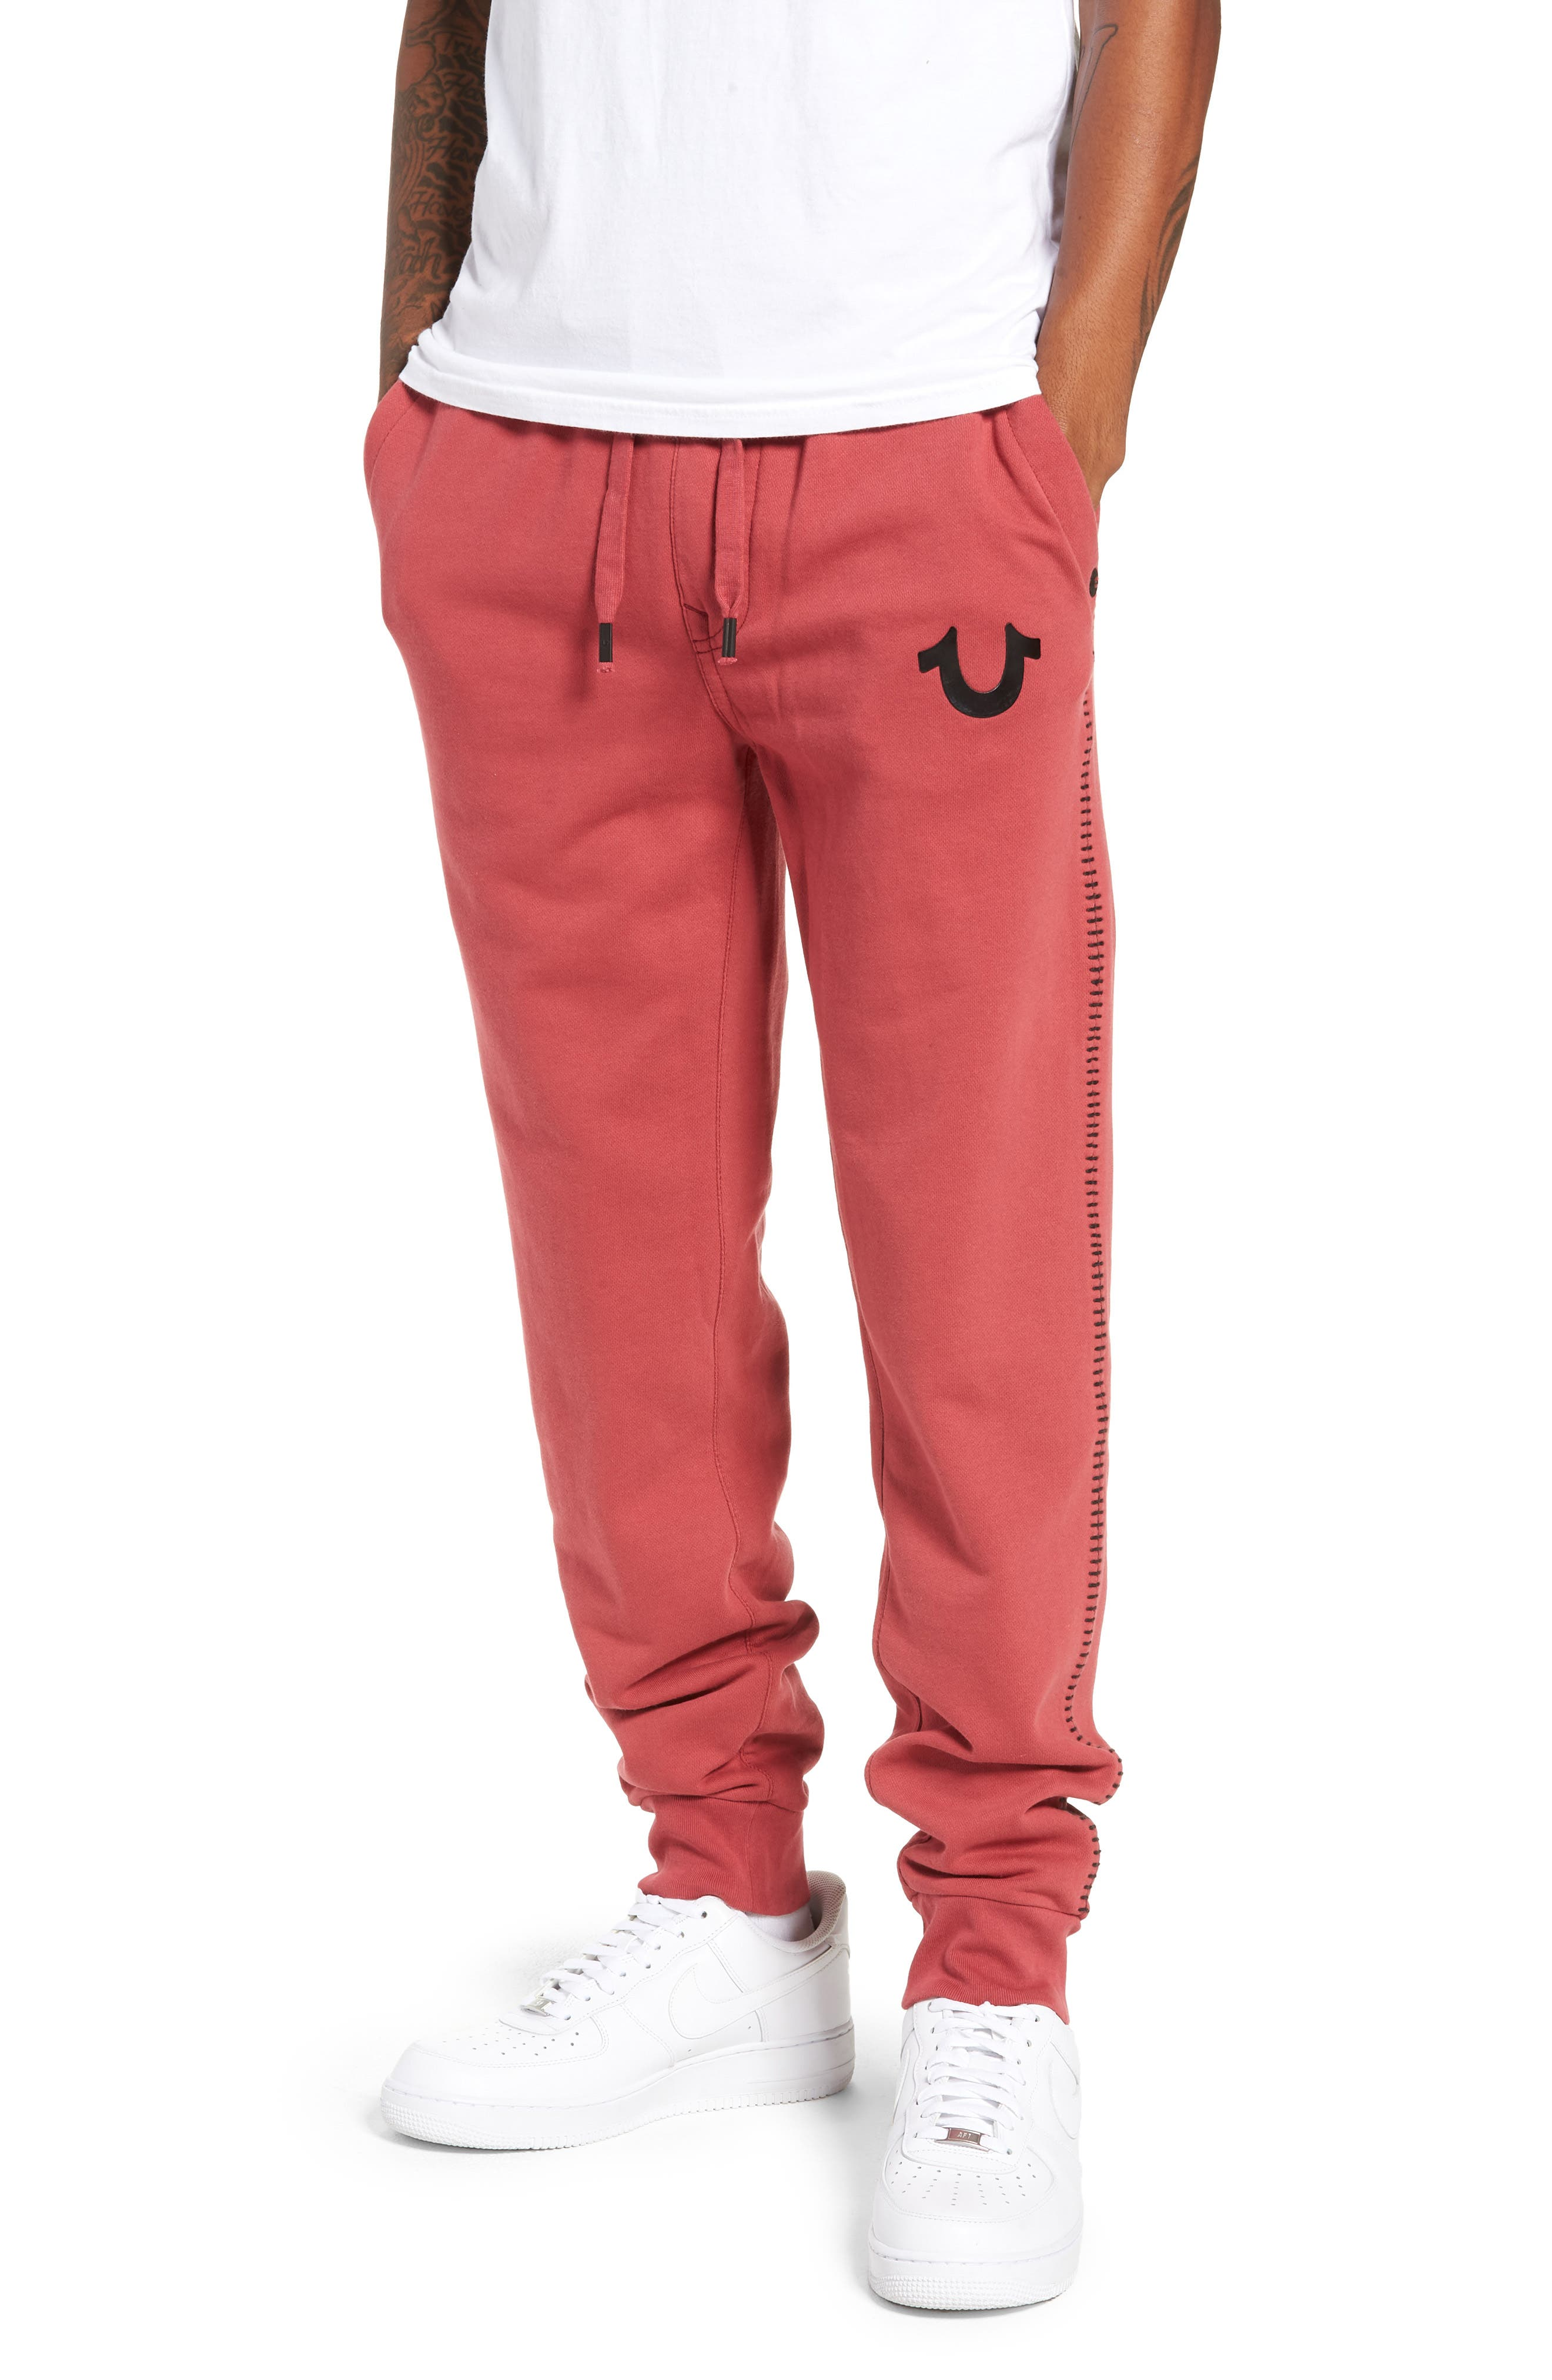 Metallic Buddha Sweatpants,                         Main,                         color, GOTH RED